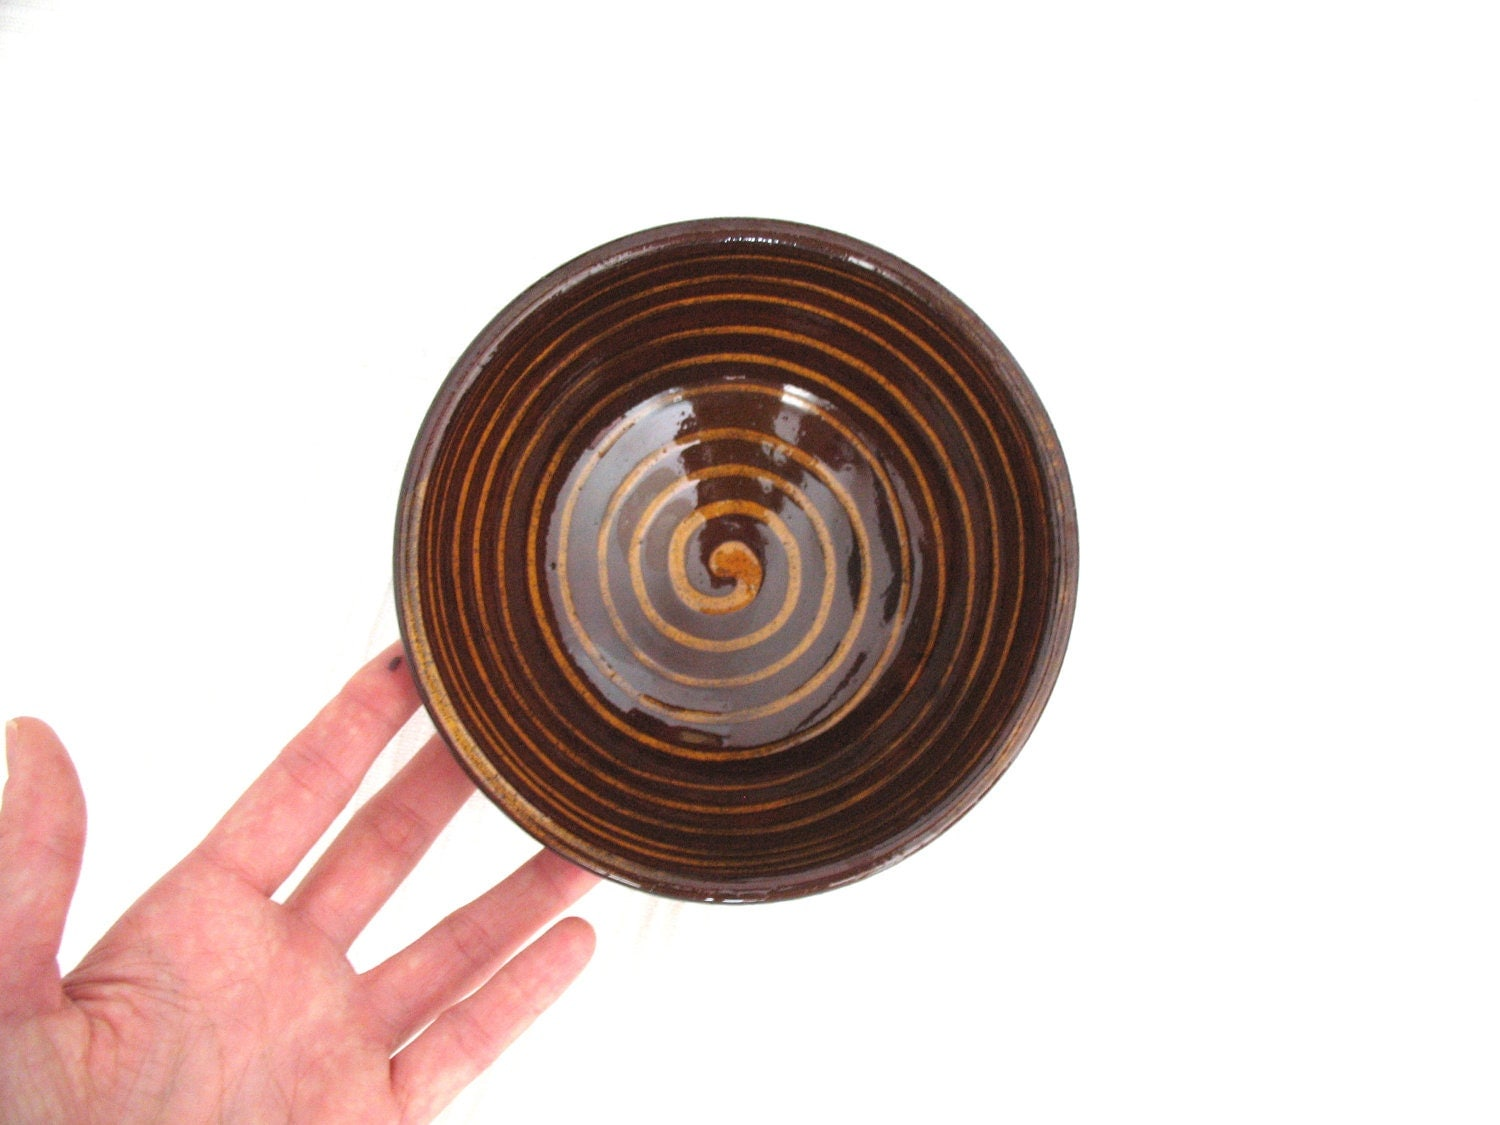 snack bowl - ceramic bowl - glazed pottery - wheel thrown bowl - rustic decoration - ready to ship - BiscuitCuit